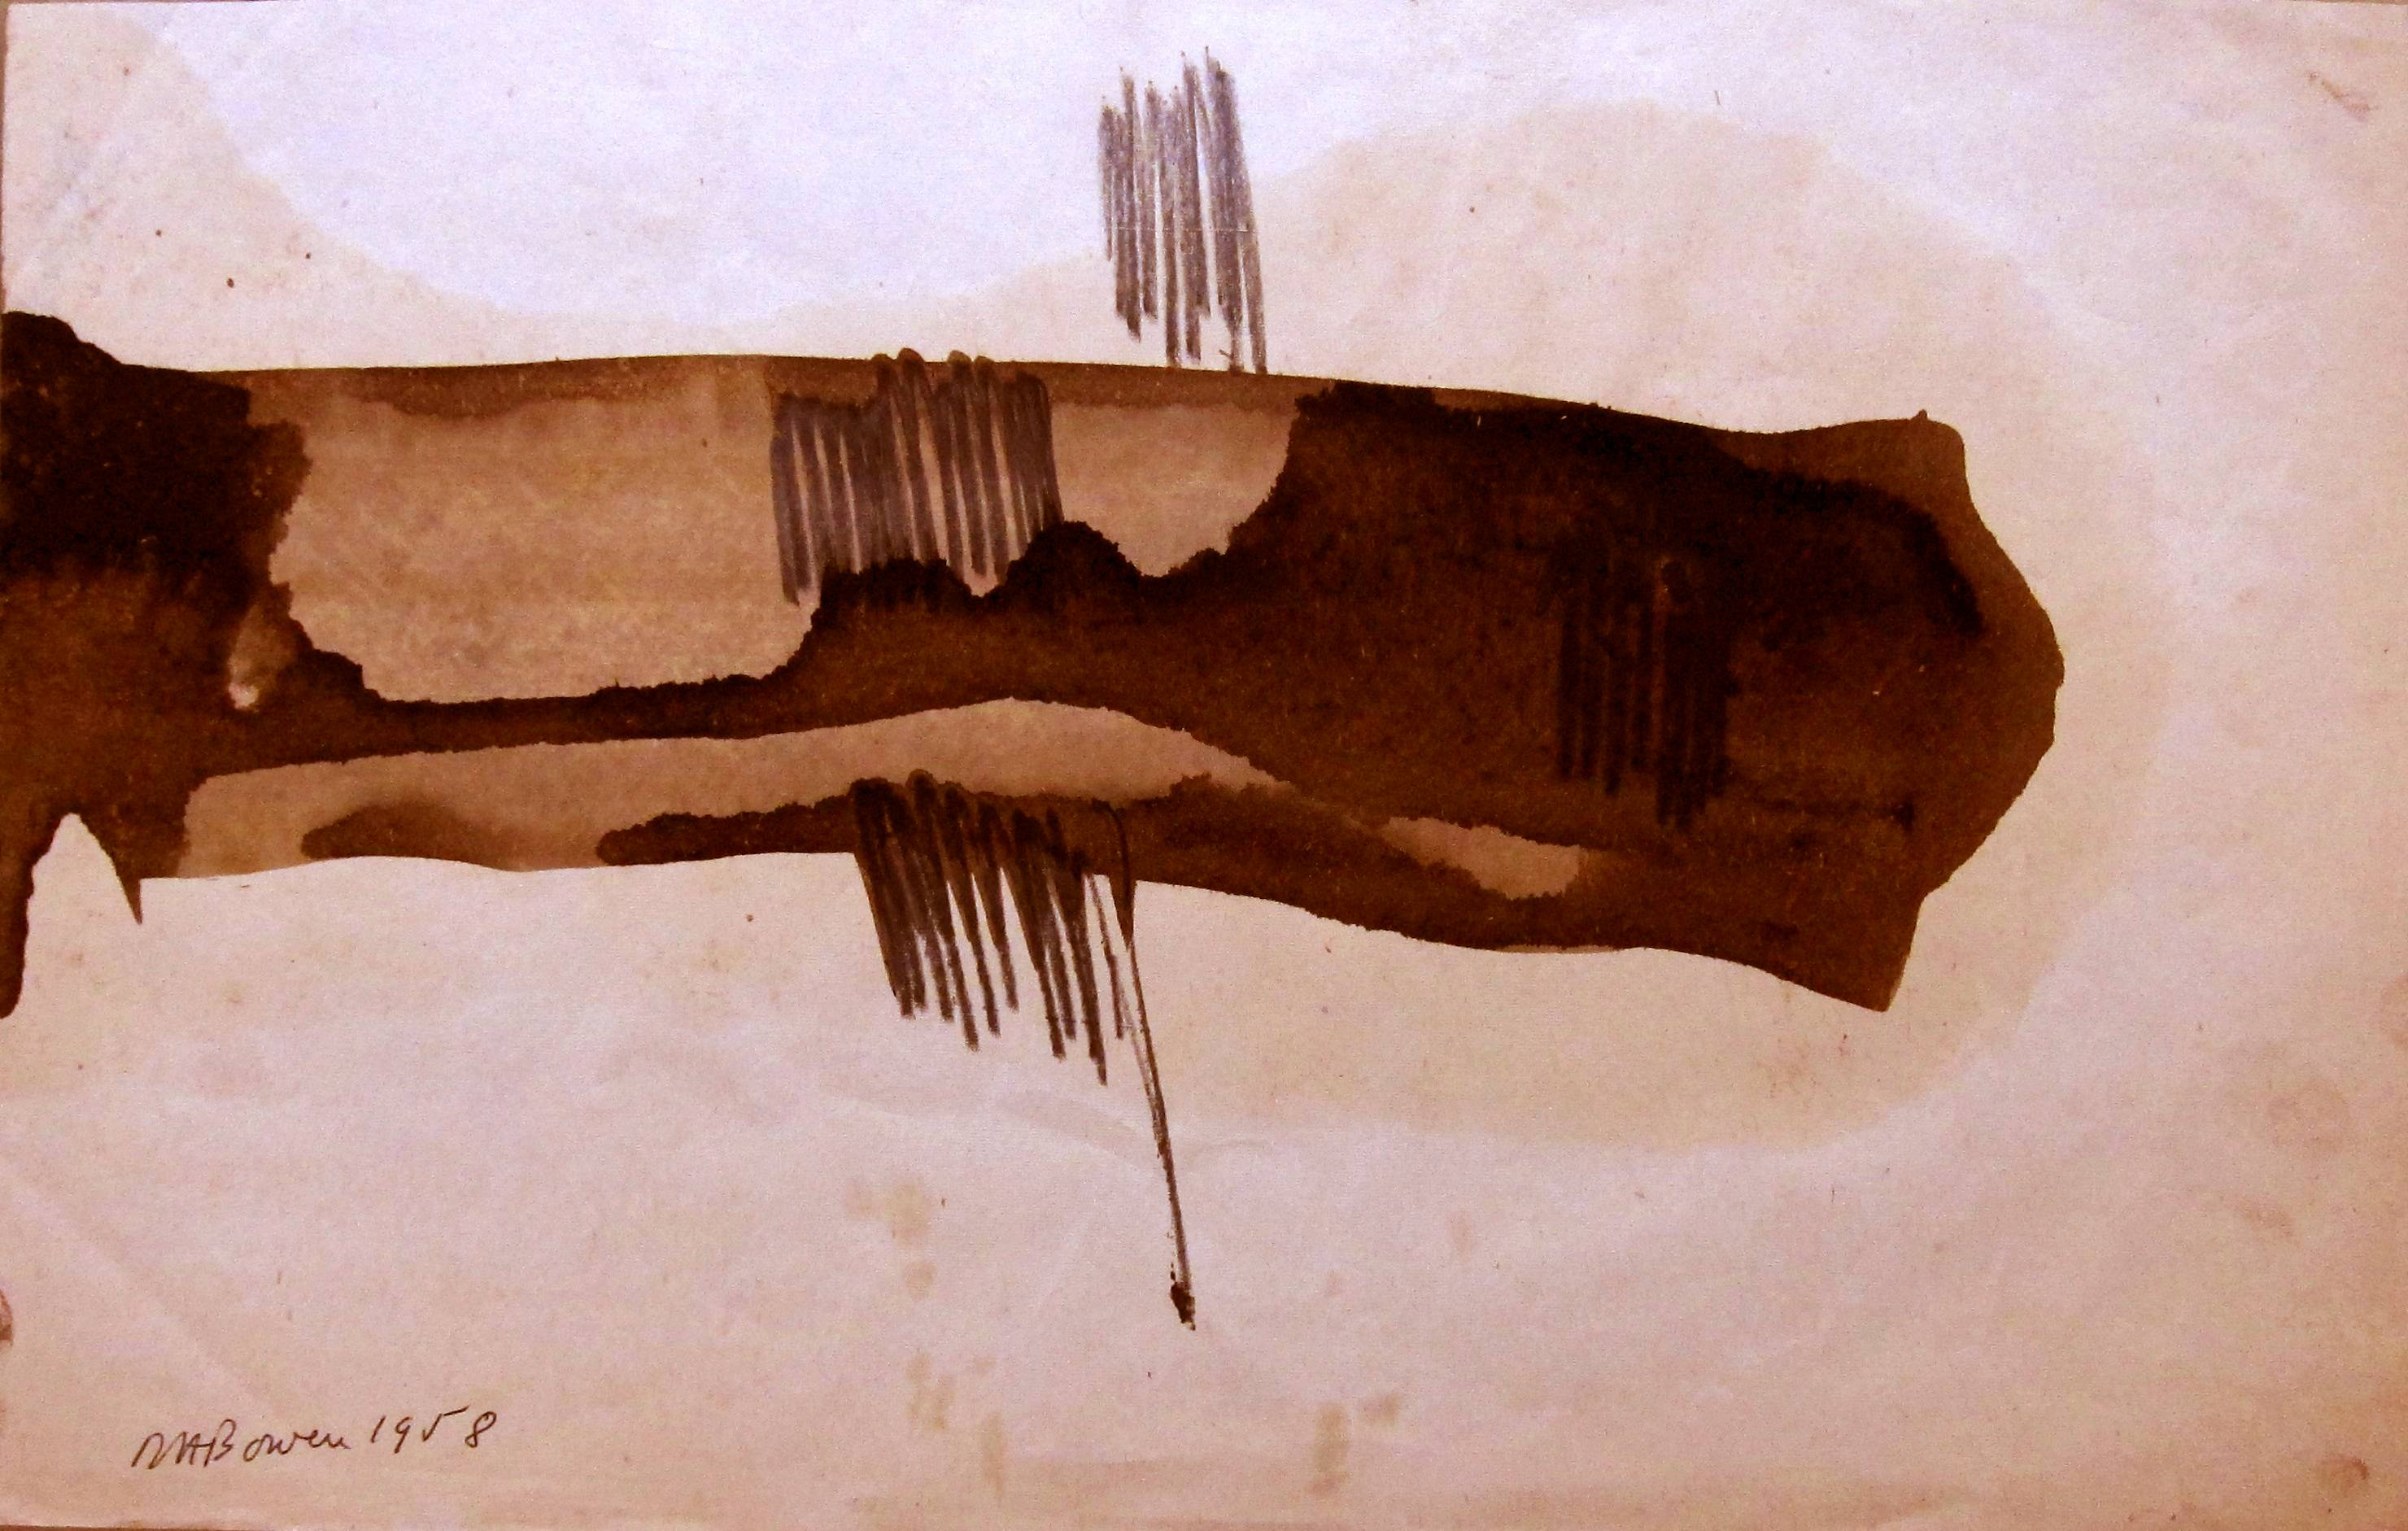 DENIS BOWEN [1921-2006]. Abstract 11 [form], 1958. Watercolour and pencil. Signed and dated. 24 x 37